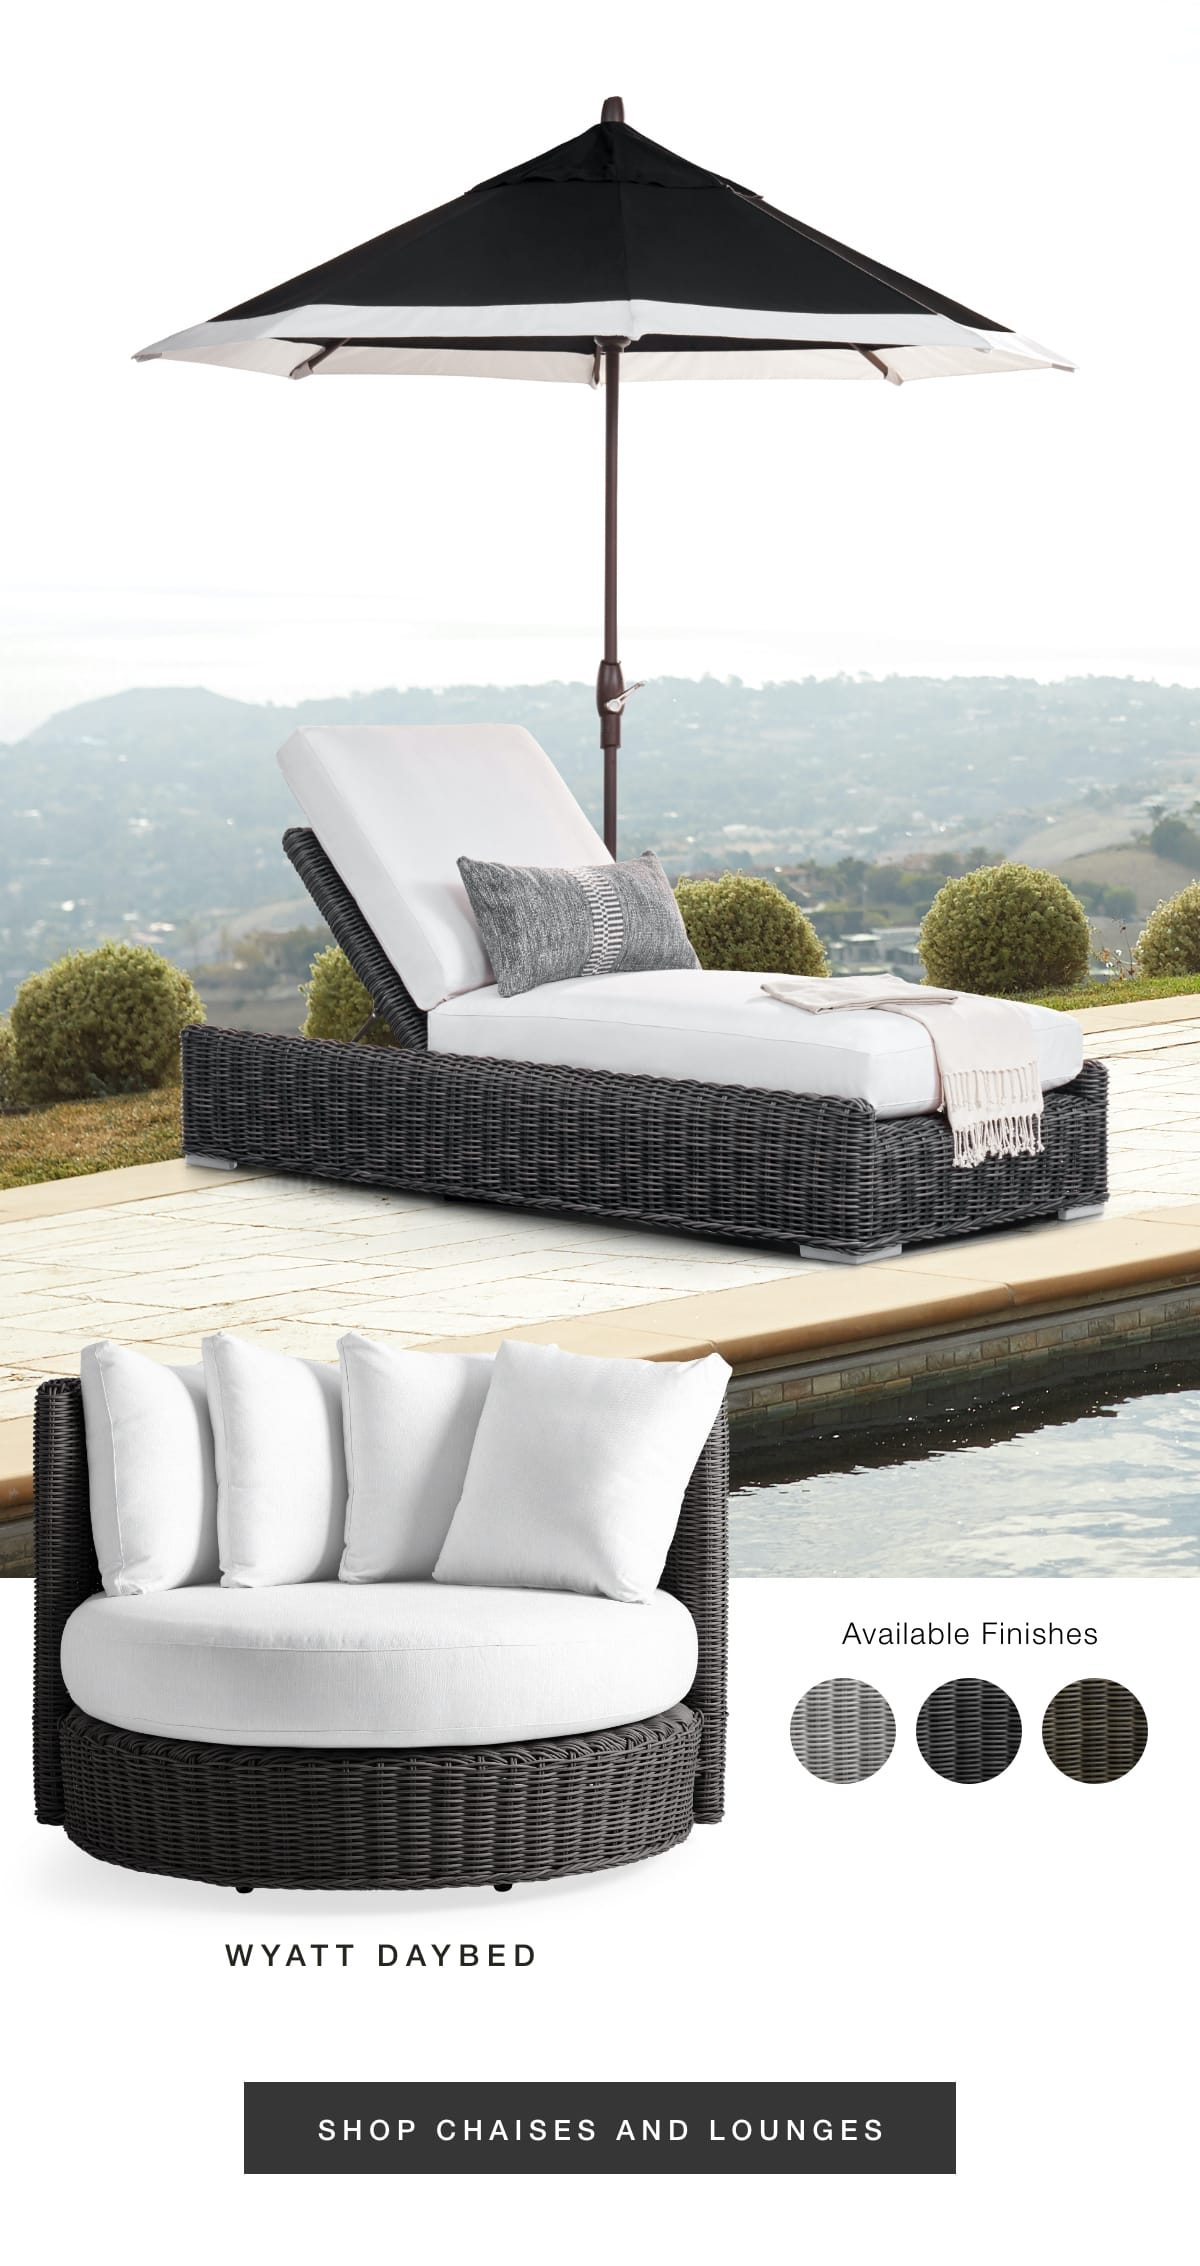 Chaises and lounges